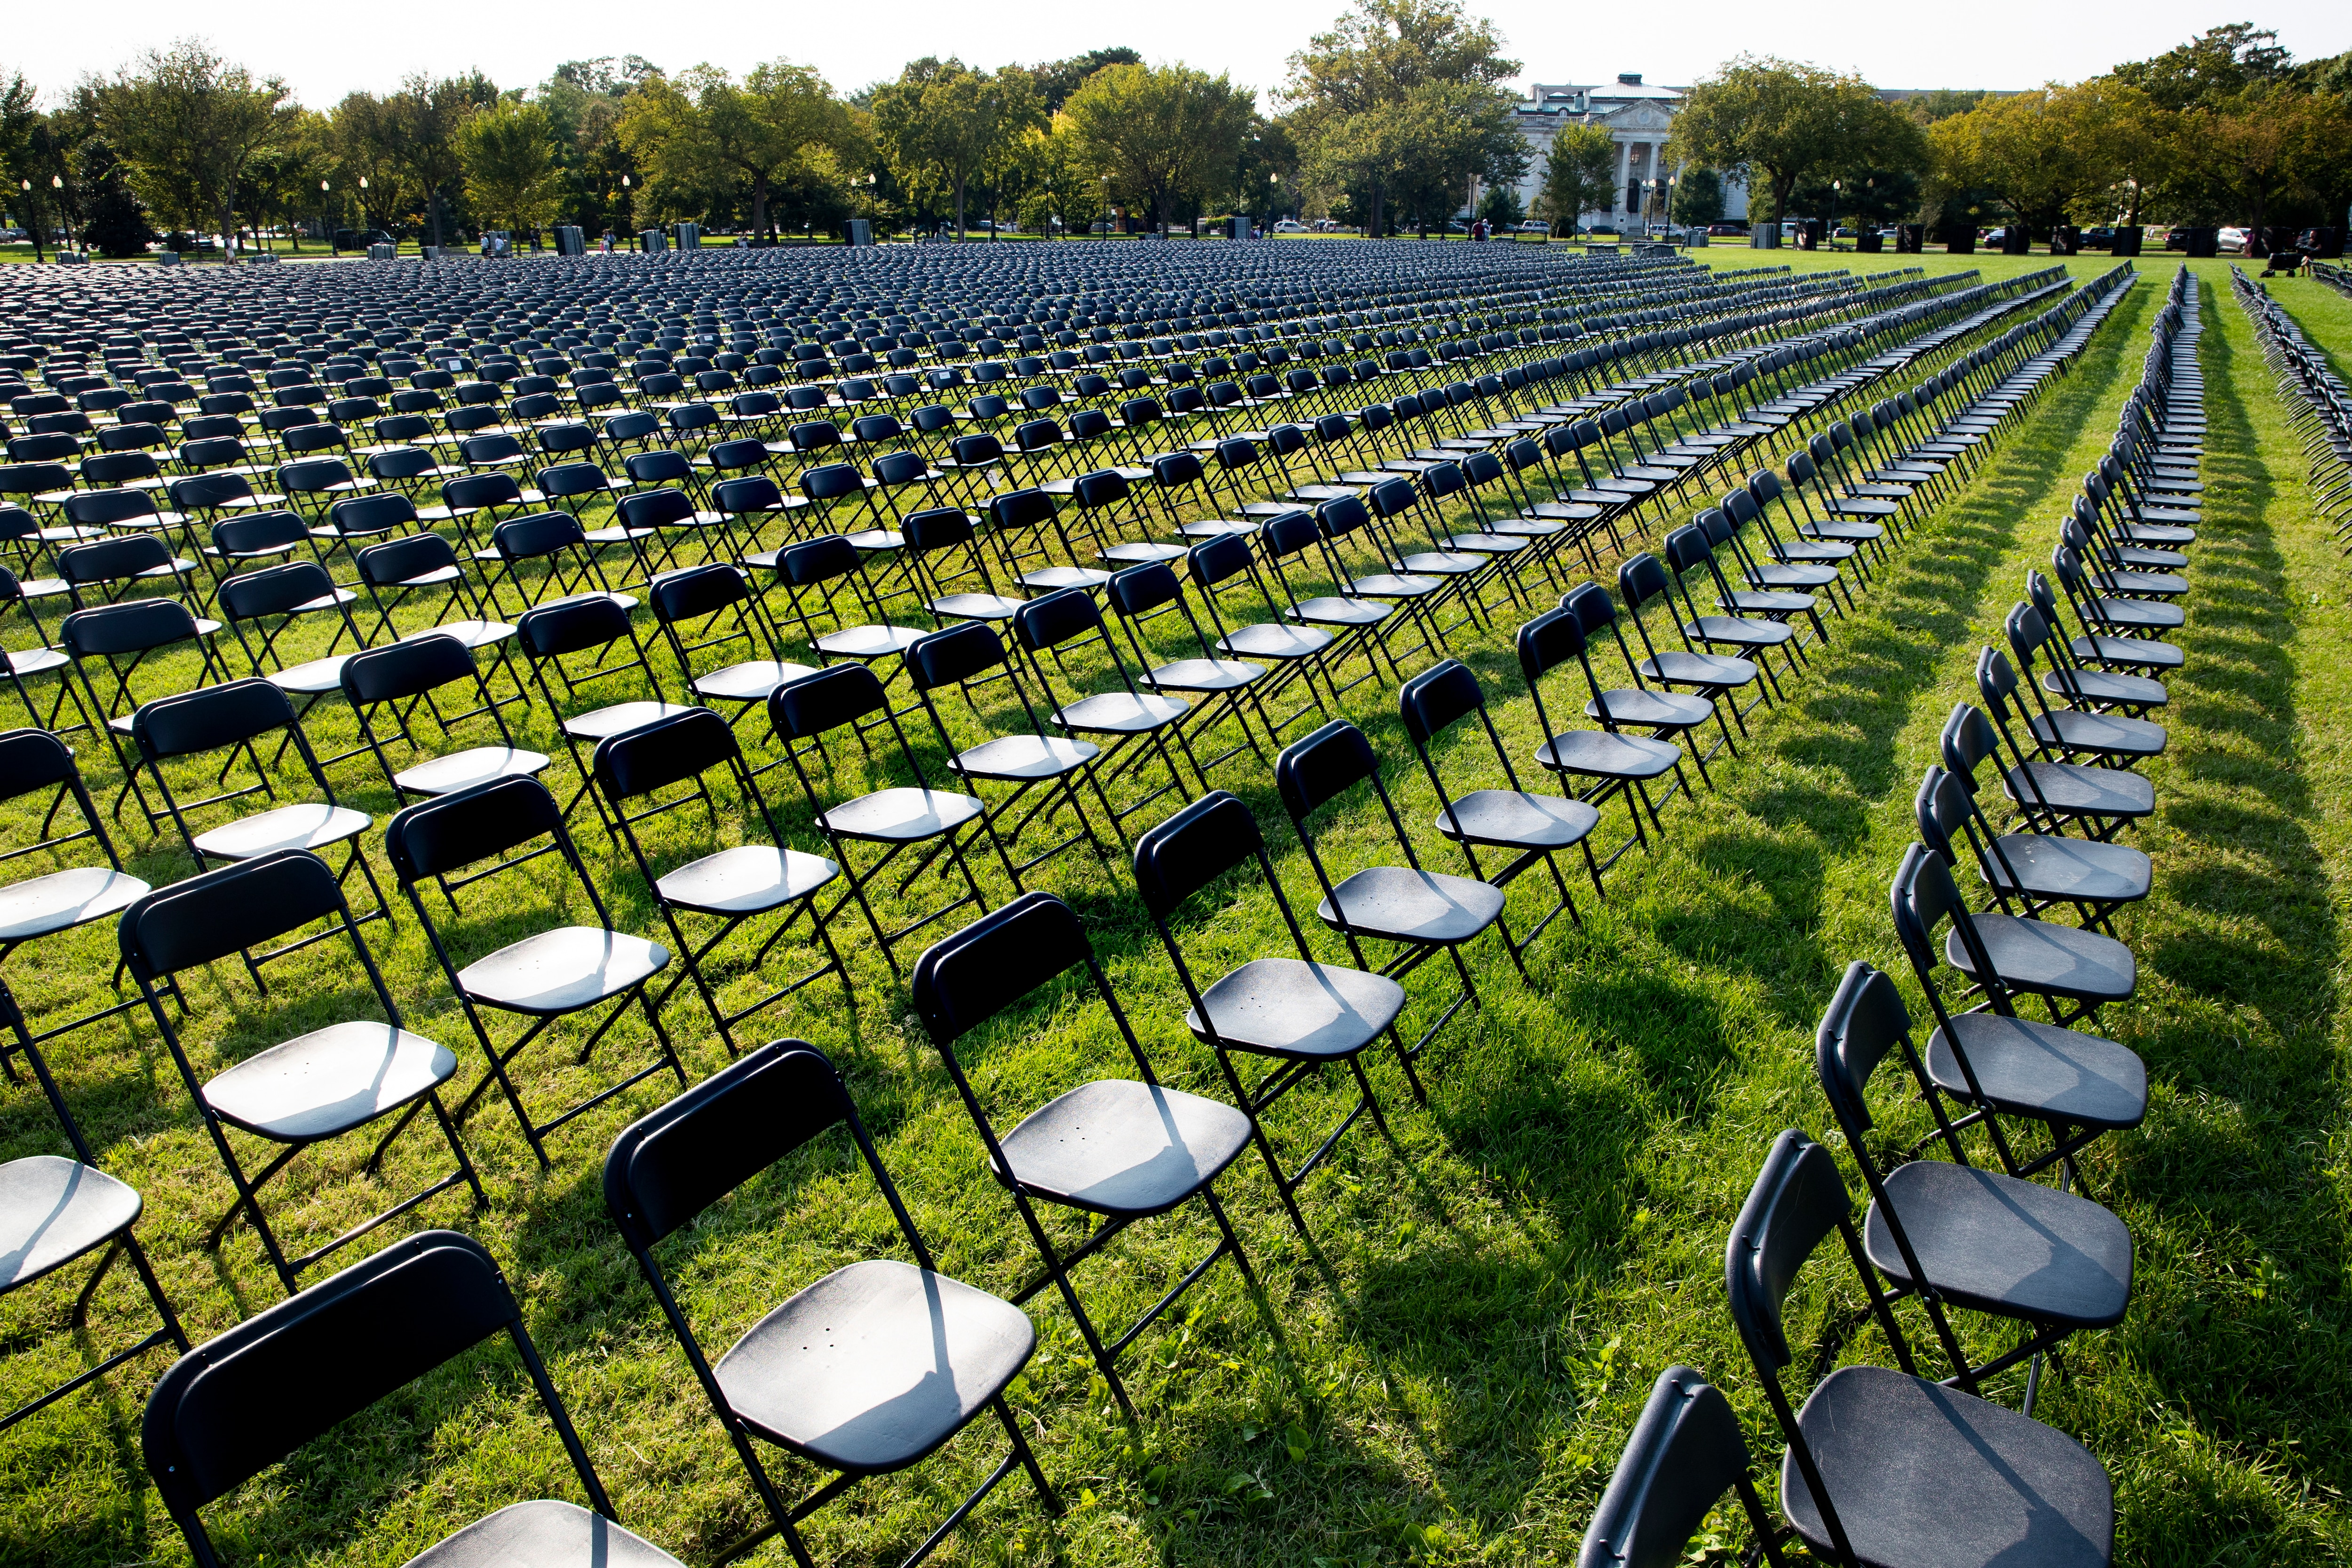 Twenty thousand empty chairs were placed near the White House to memorialise the over 200,000 people in the US who died with COVID-19.